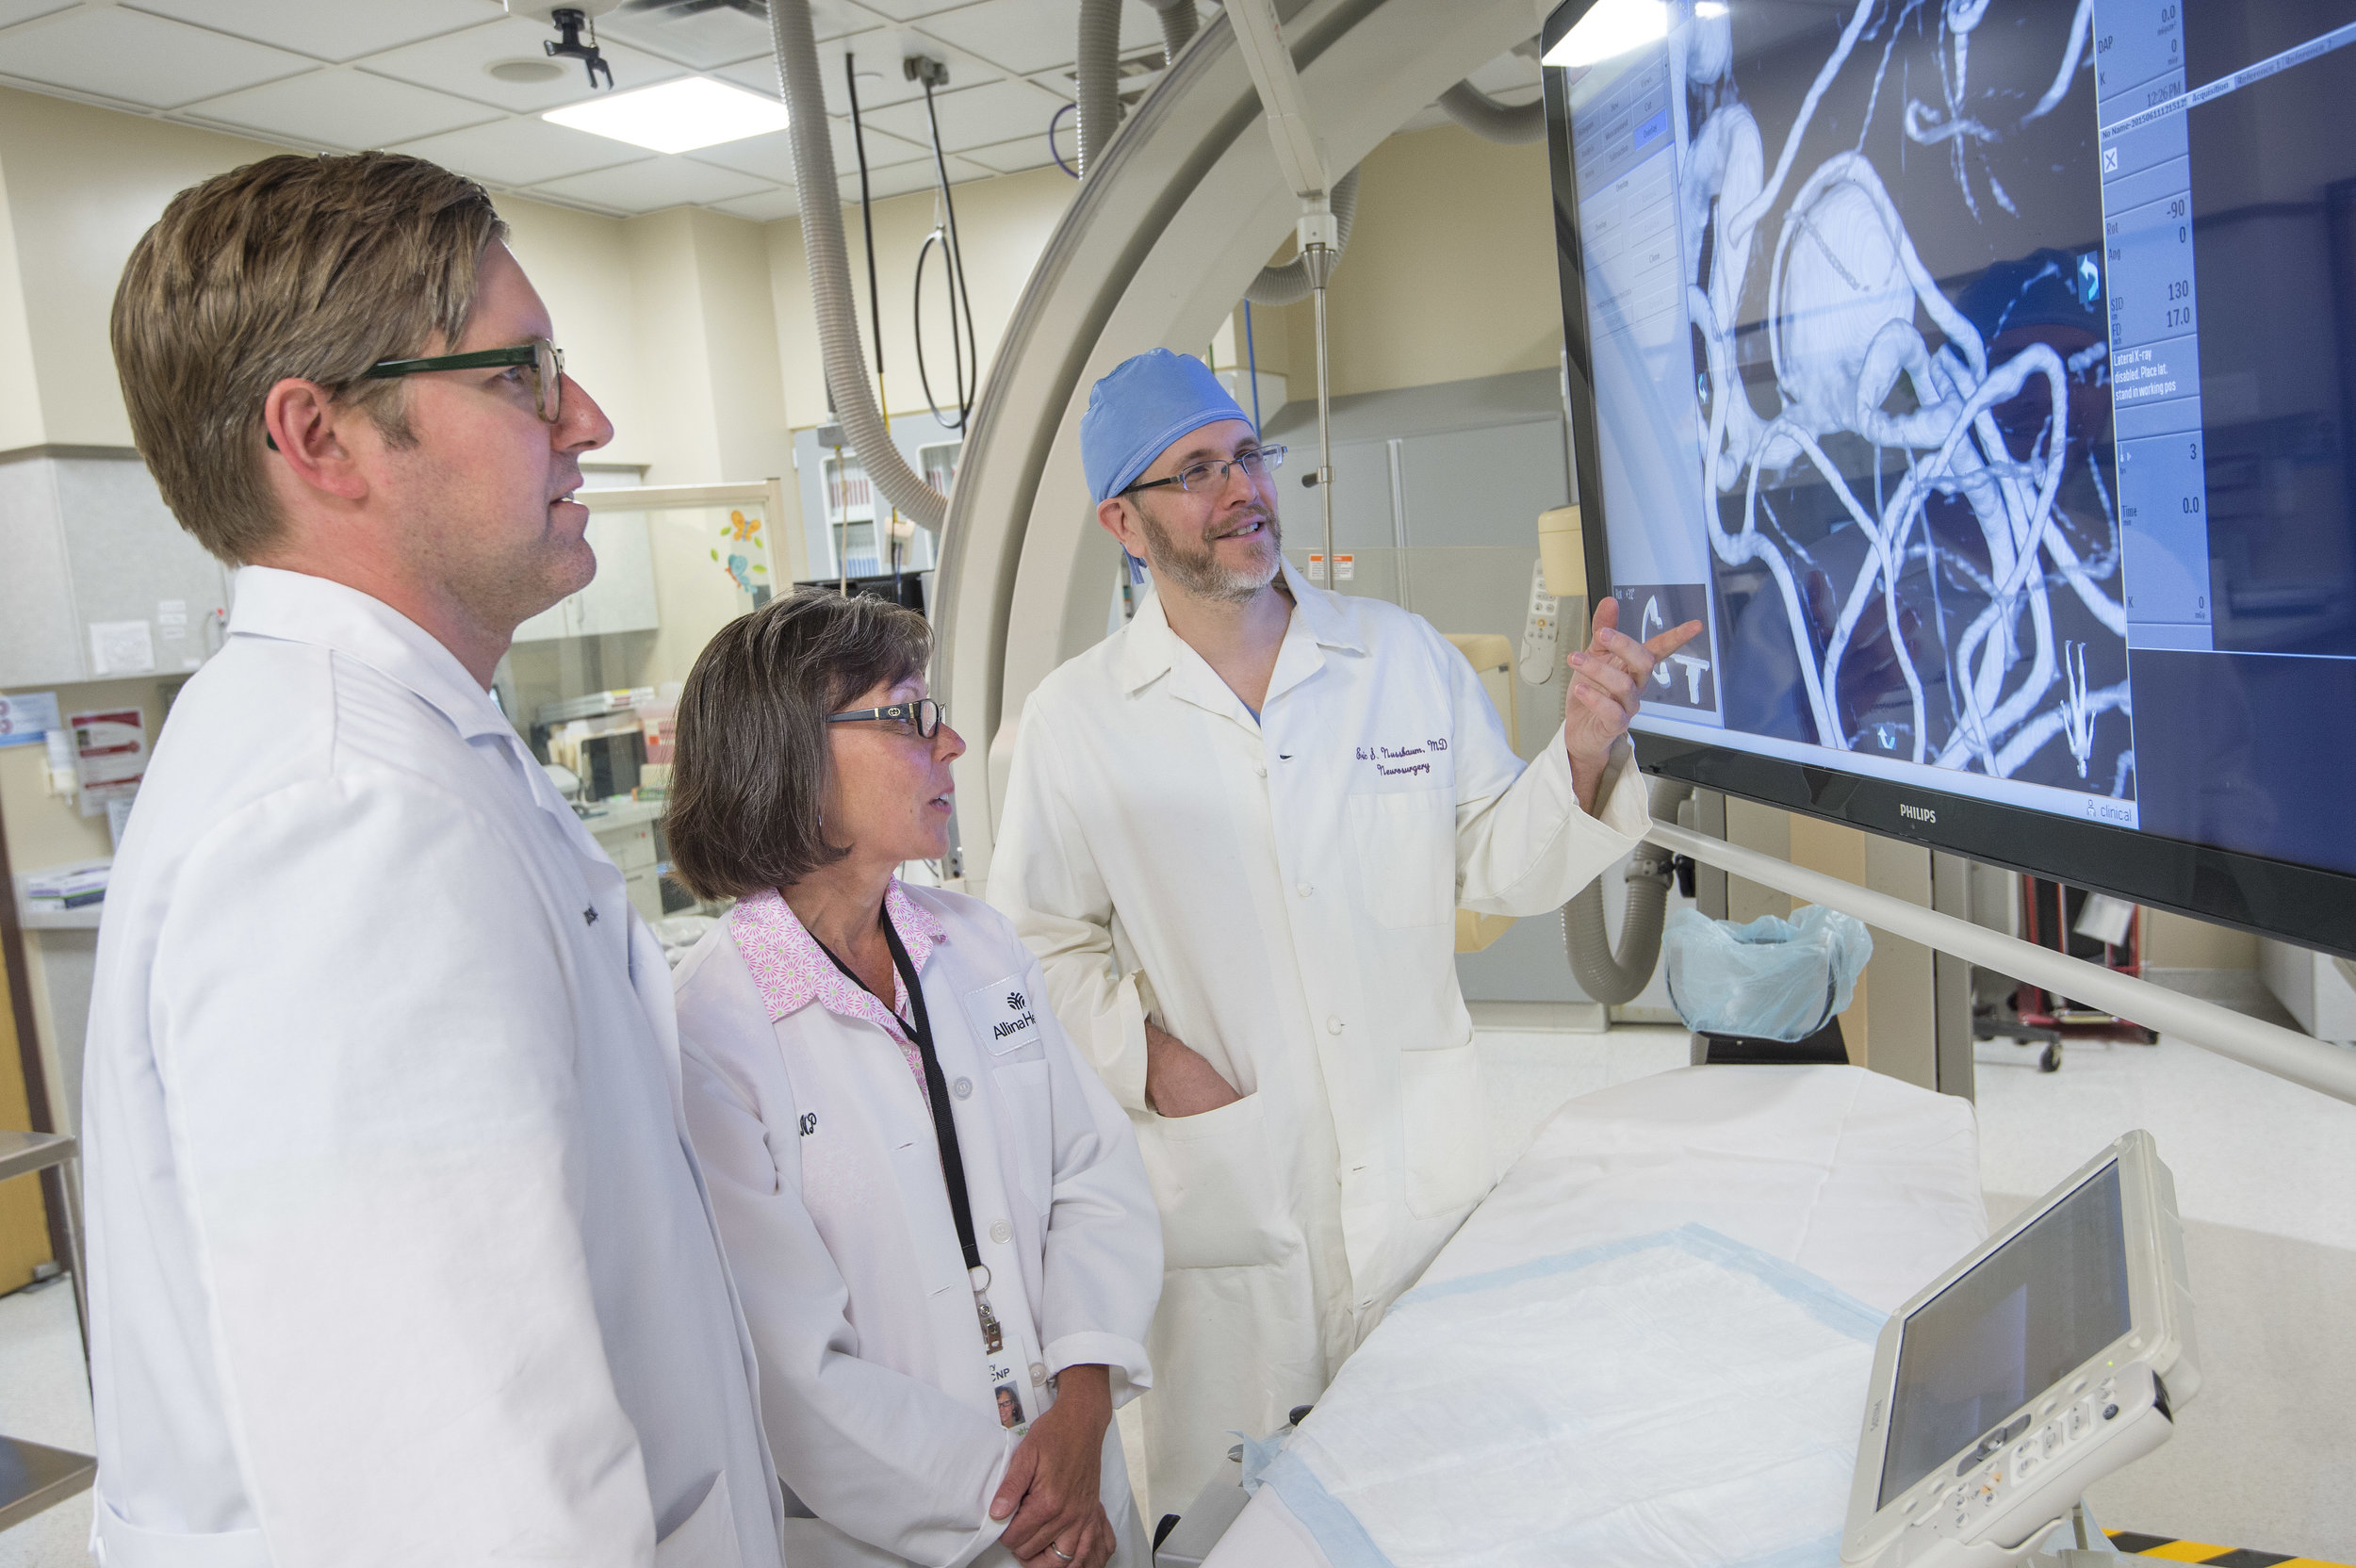 Eric Nussbaum, MD, neurosurgeon specializing in brain aneurysms has a multidisciplinary, team approach